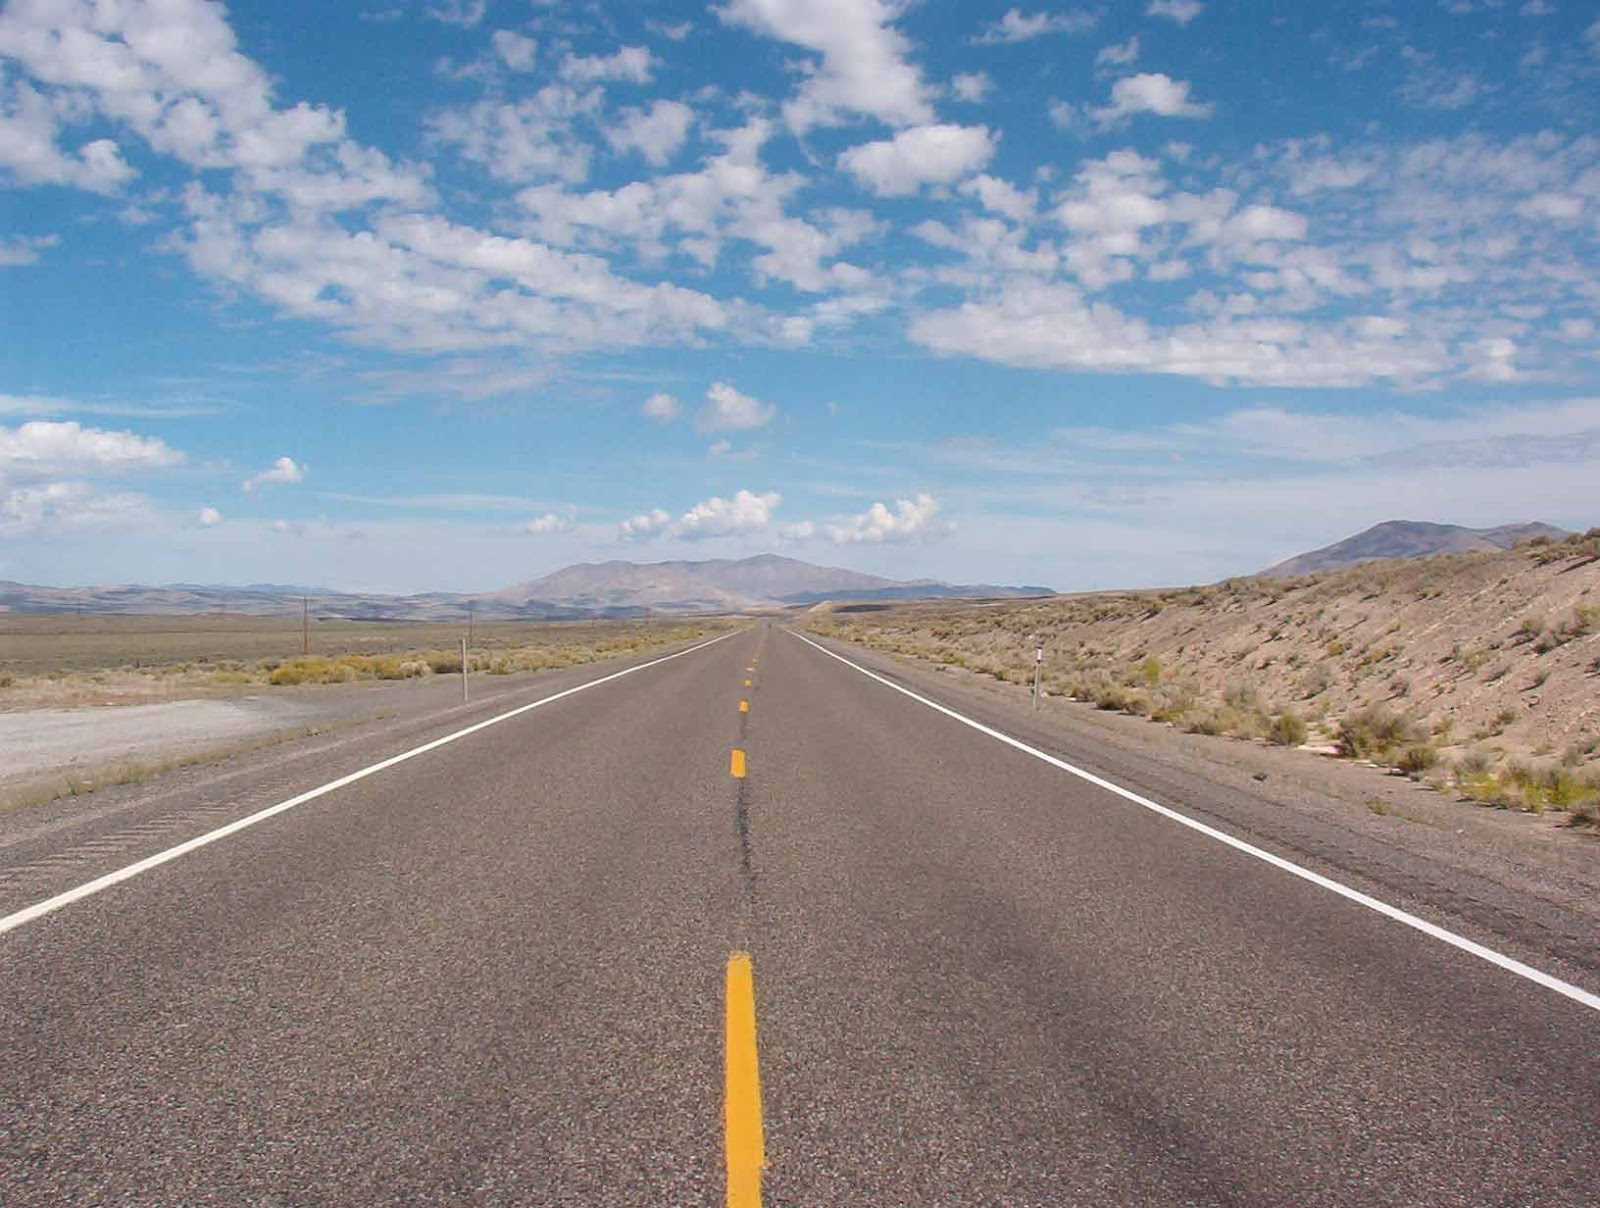 Personal Perspectives: On the Road Again...